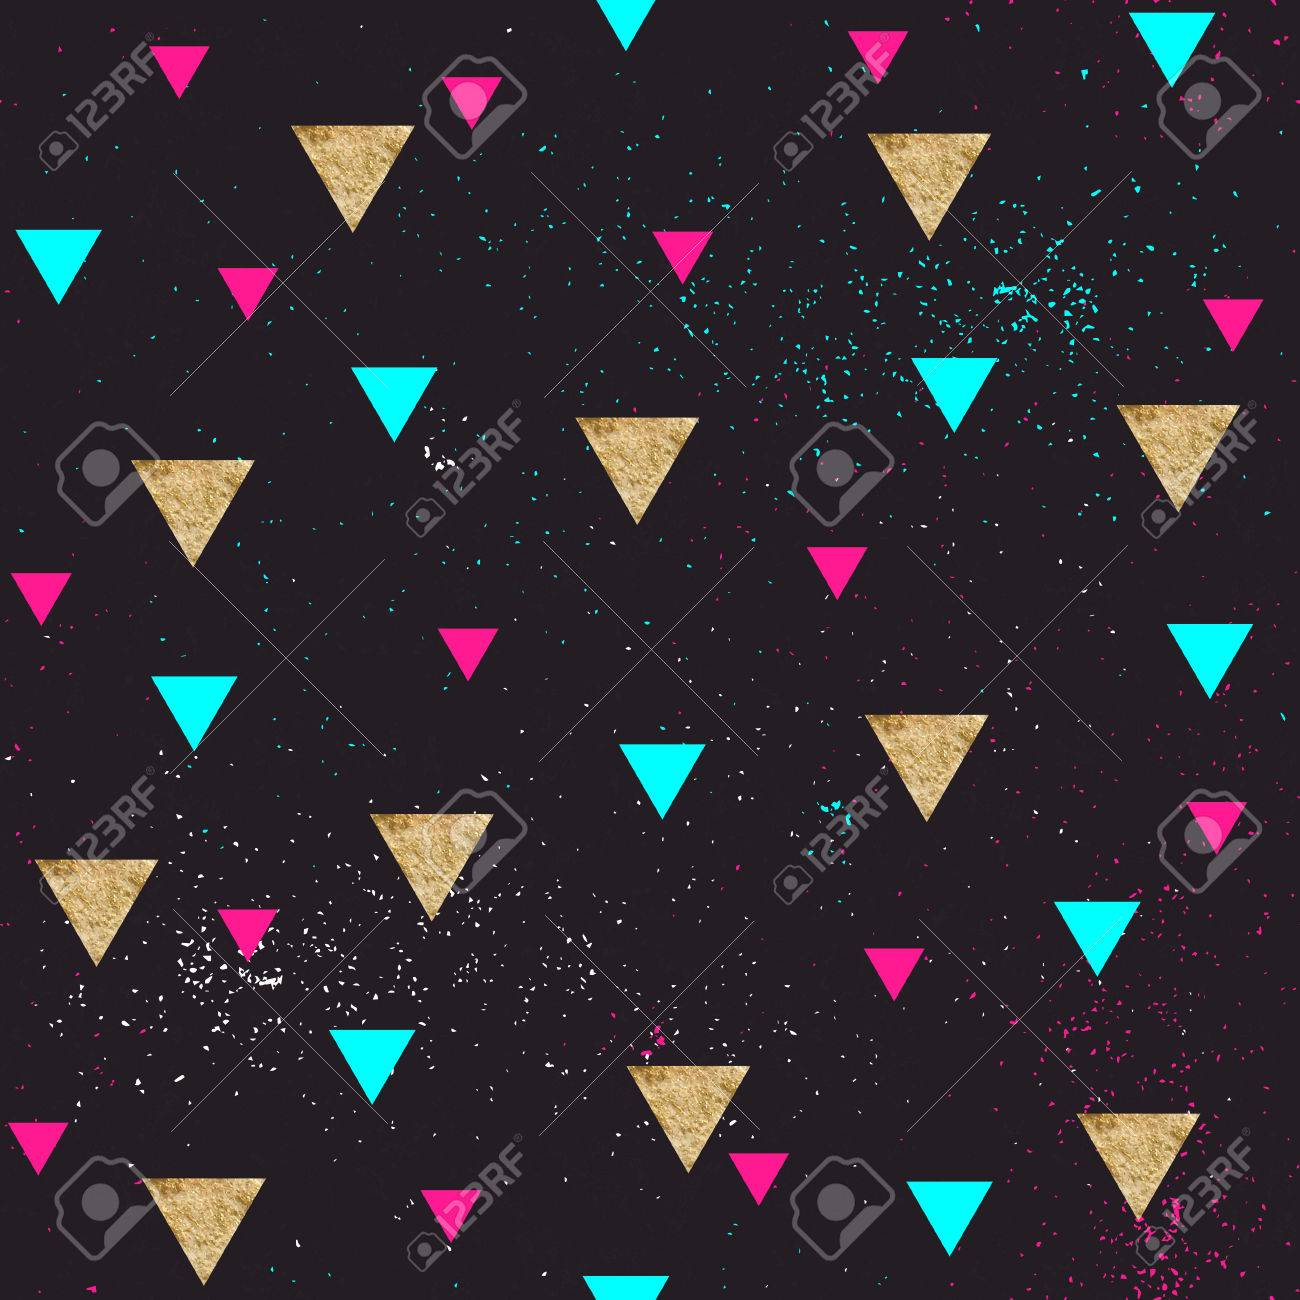 Geometric Abstract Art Triangles